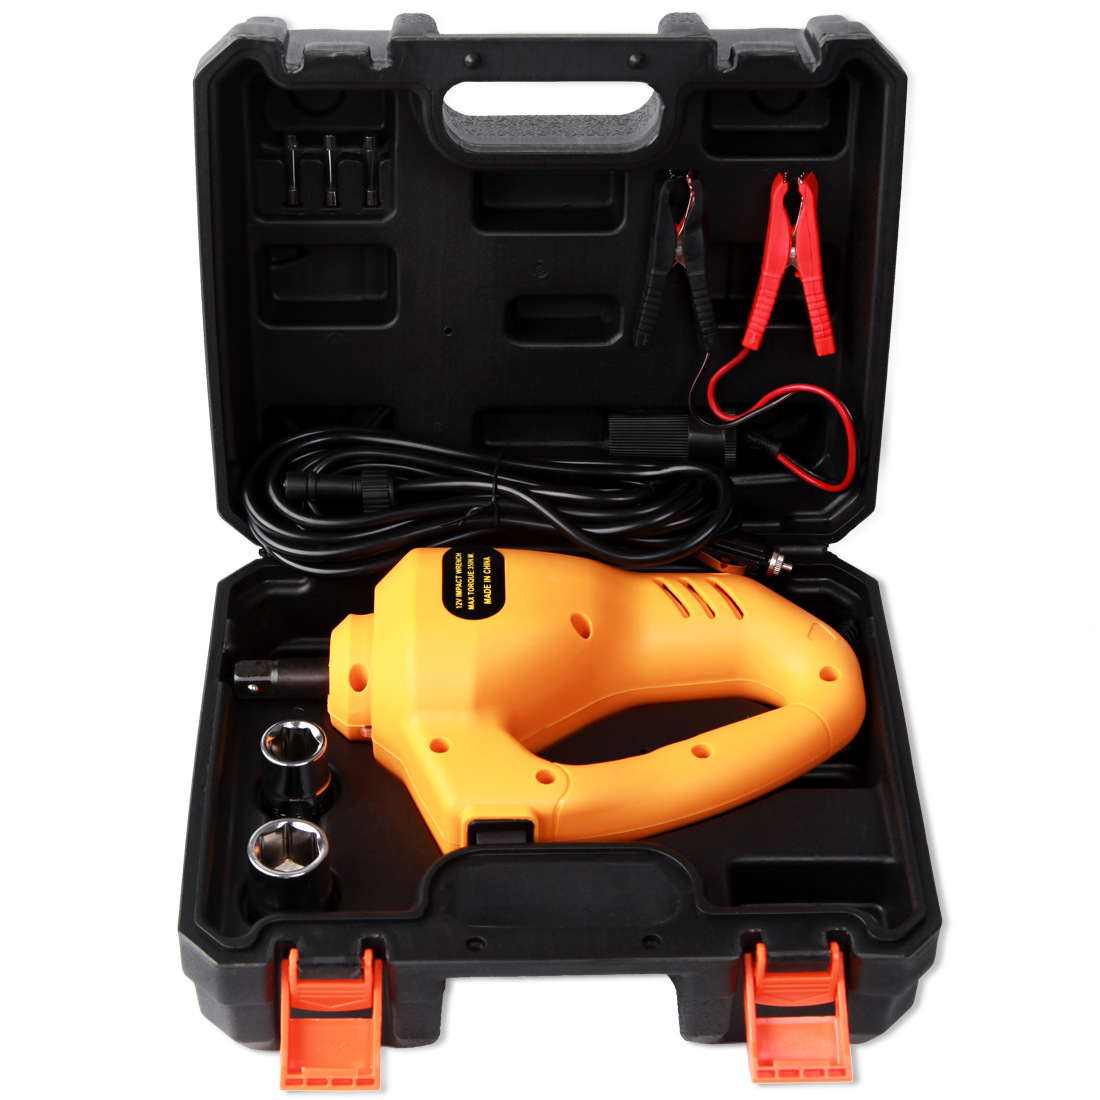 12v 3T Car Electric Jack Electric Wrench Car Tire Changing Tool Car Repair Tools